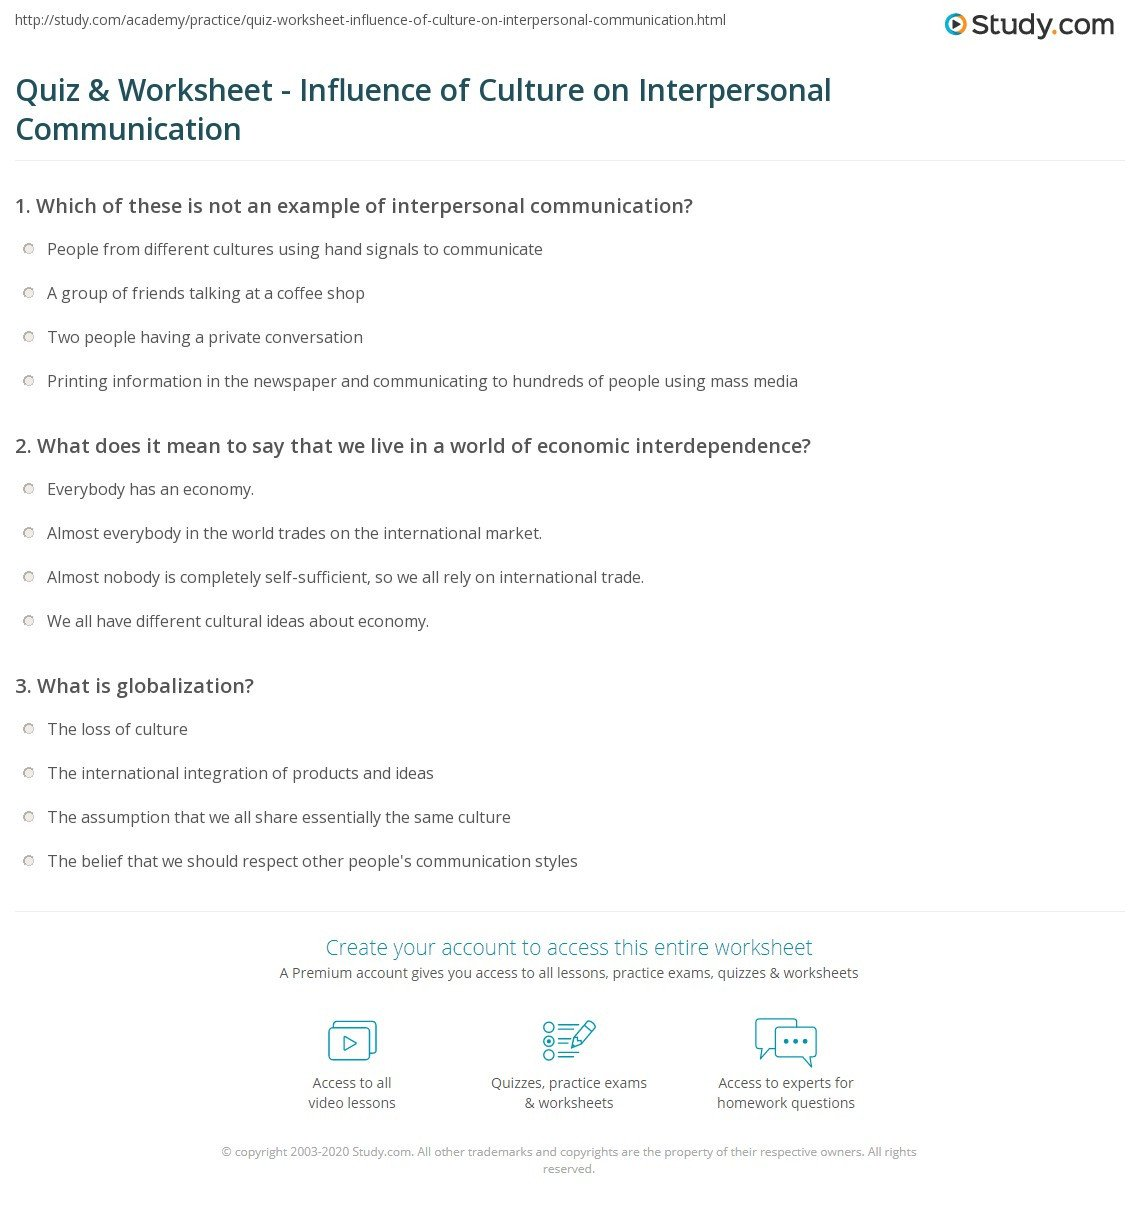 quiz worksheet influence of culture on interpersonal munication